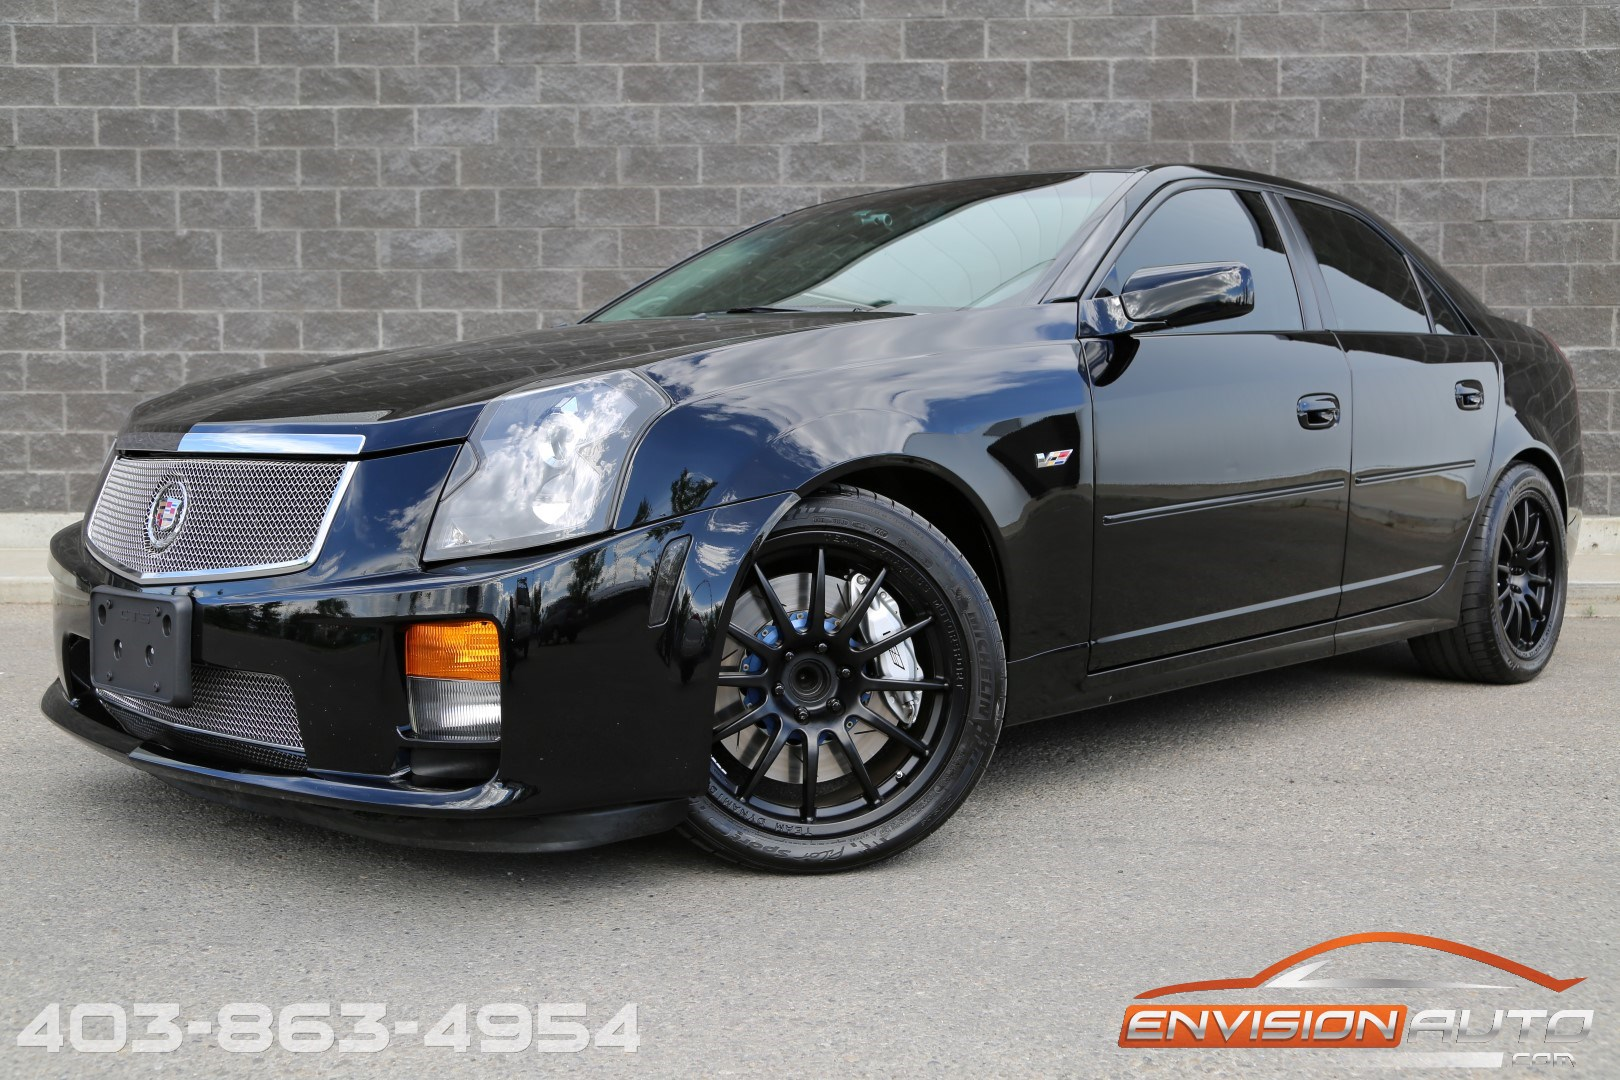 2005 Cadillac CTS-V Sedan – 6 Speed Manual – 470 RWHP!! | Envision Auto - Calgary Highline ...